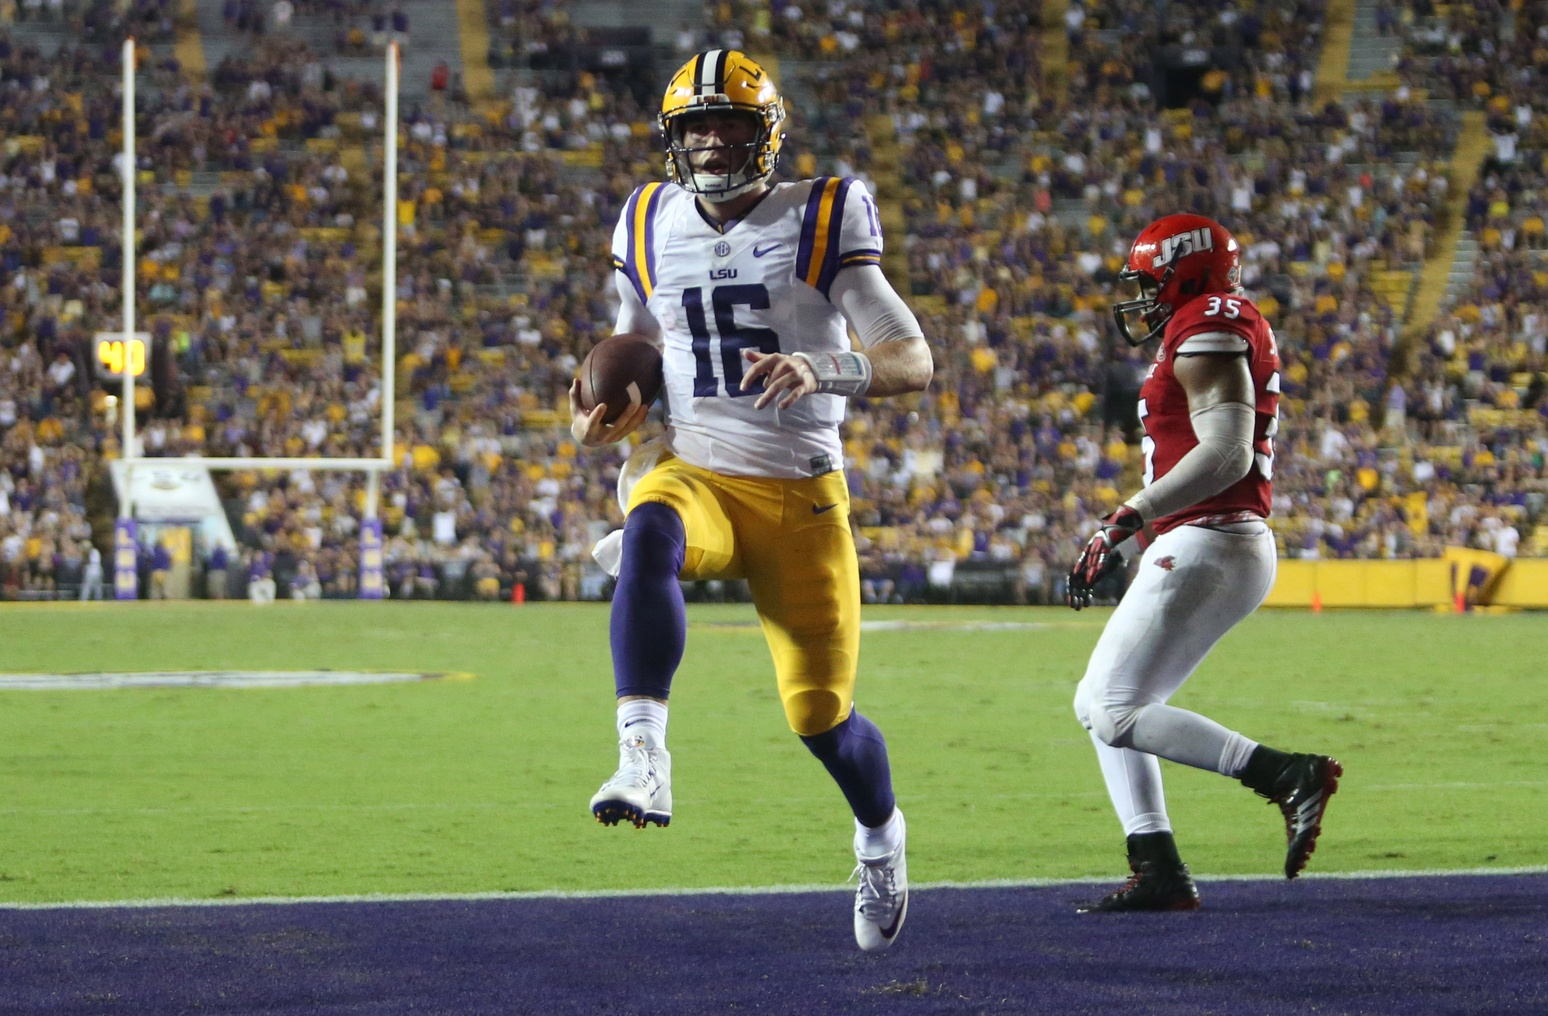 Sep 10, 2016; Baton Rouge, LA, USA; LSU Tigers quarterback Danny Etling (16) runs the ball into the end zone for a touchdown in front of Jacksonville State Gamecocks linebacker Quan Stoudemire (35) during the second half at Tiger Stadium. LSU defeated Jacksonville State 34-13. Mandatory Credit: Crystal LoGiudice-USA TODAY Sports